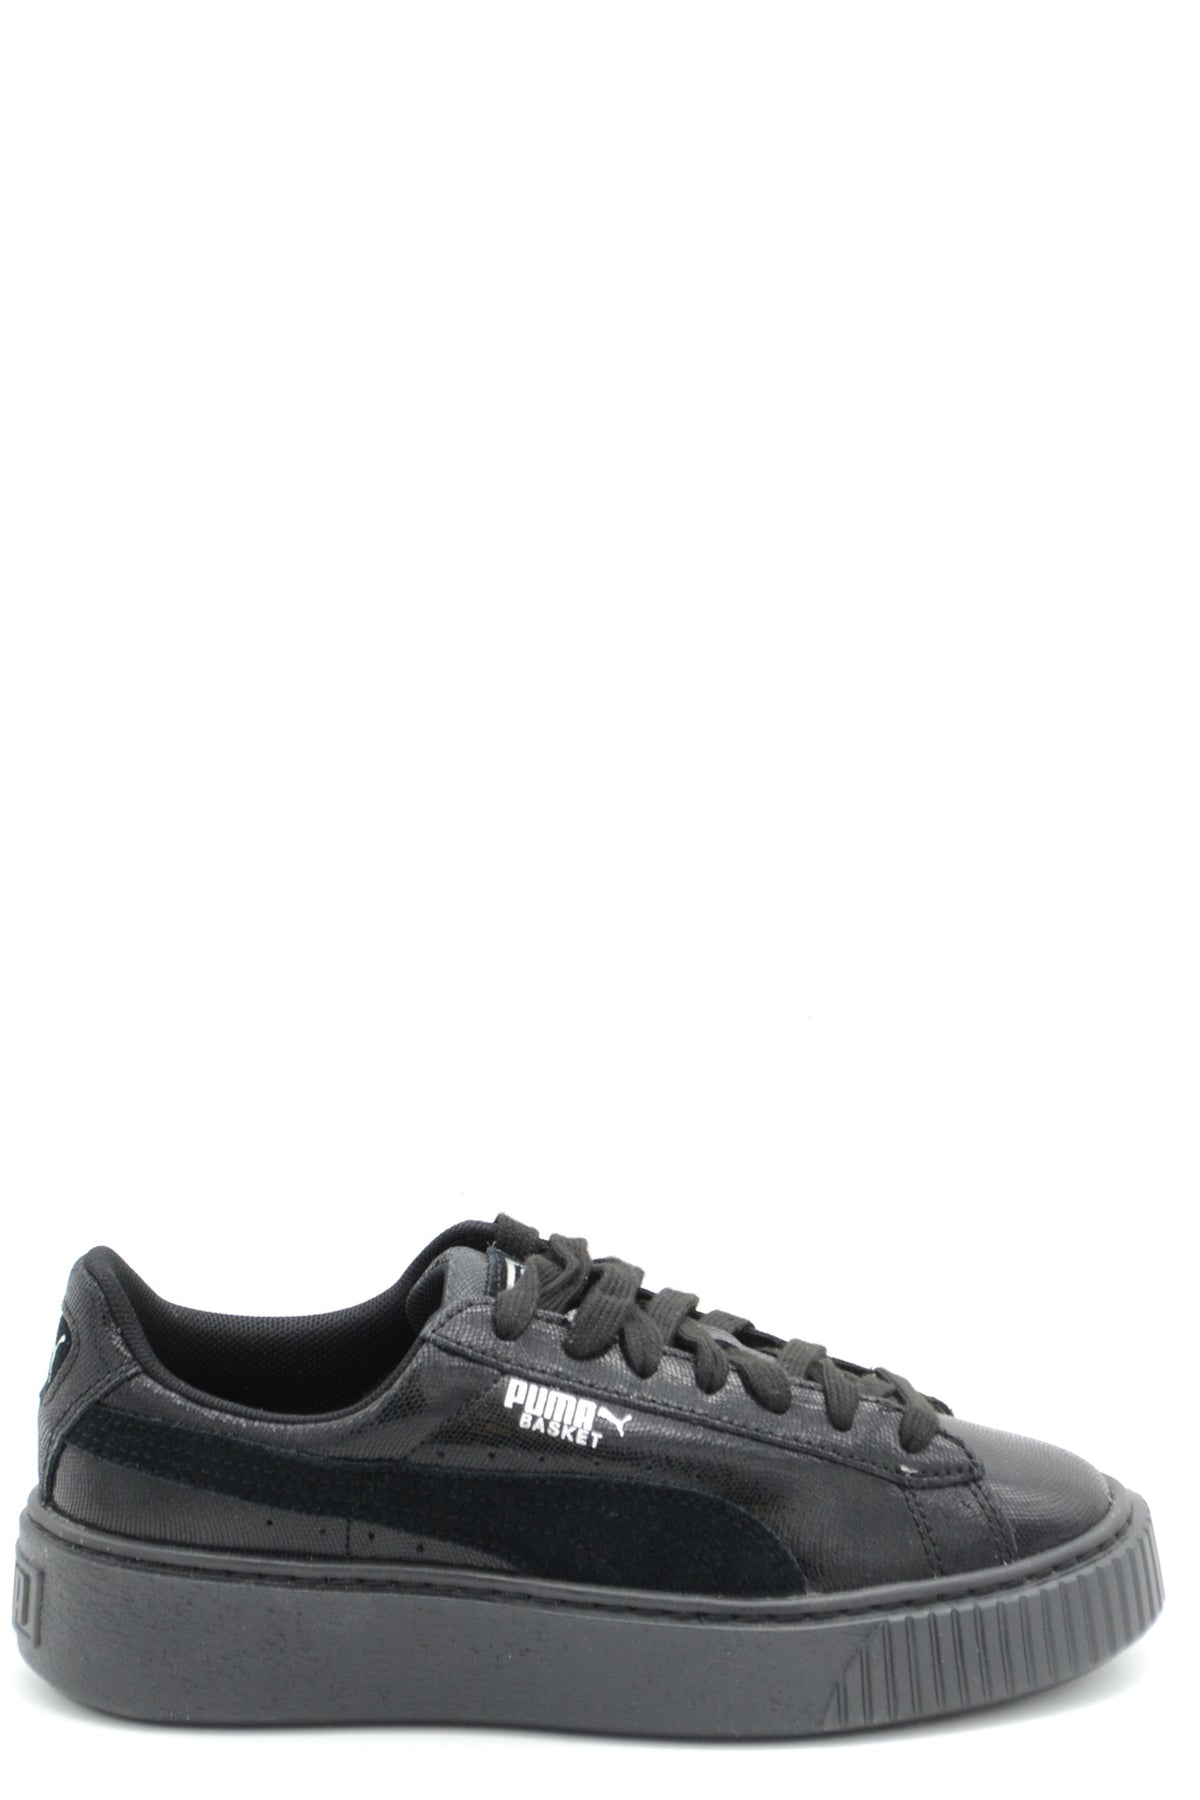 Shoes Puma-Sneakers - WOMAN-36-Product Details Type Of Accessory: ShoesSeason: Spring / SummerTerms: New With LabelMain Color: BlackGender: WomanMade In: VietnamManufacturer Part Number: 364587 01Size: EuYear: 2018Composition: Leather 100%-Keyomi-Sook